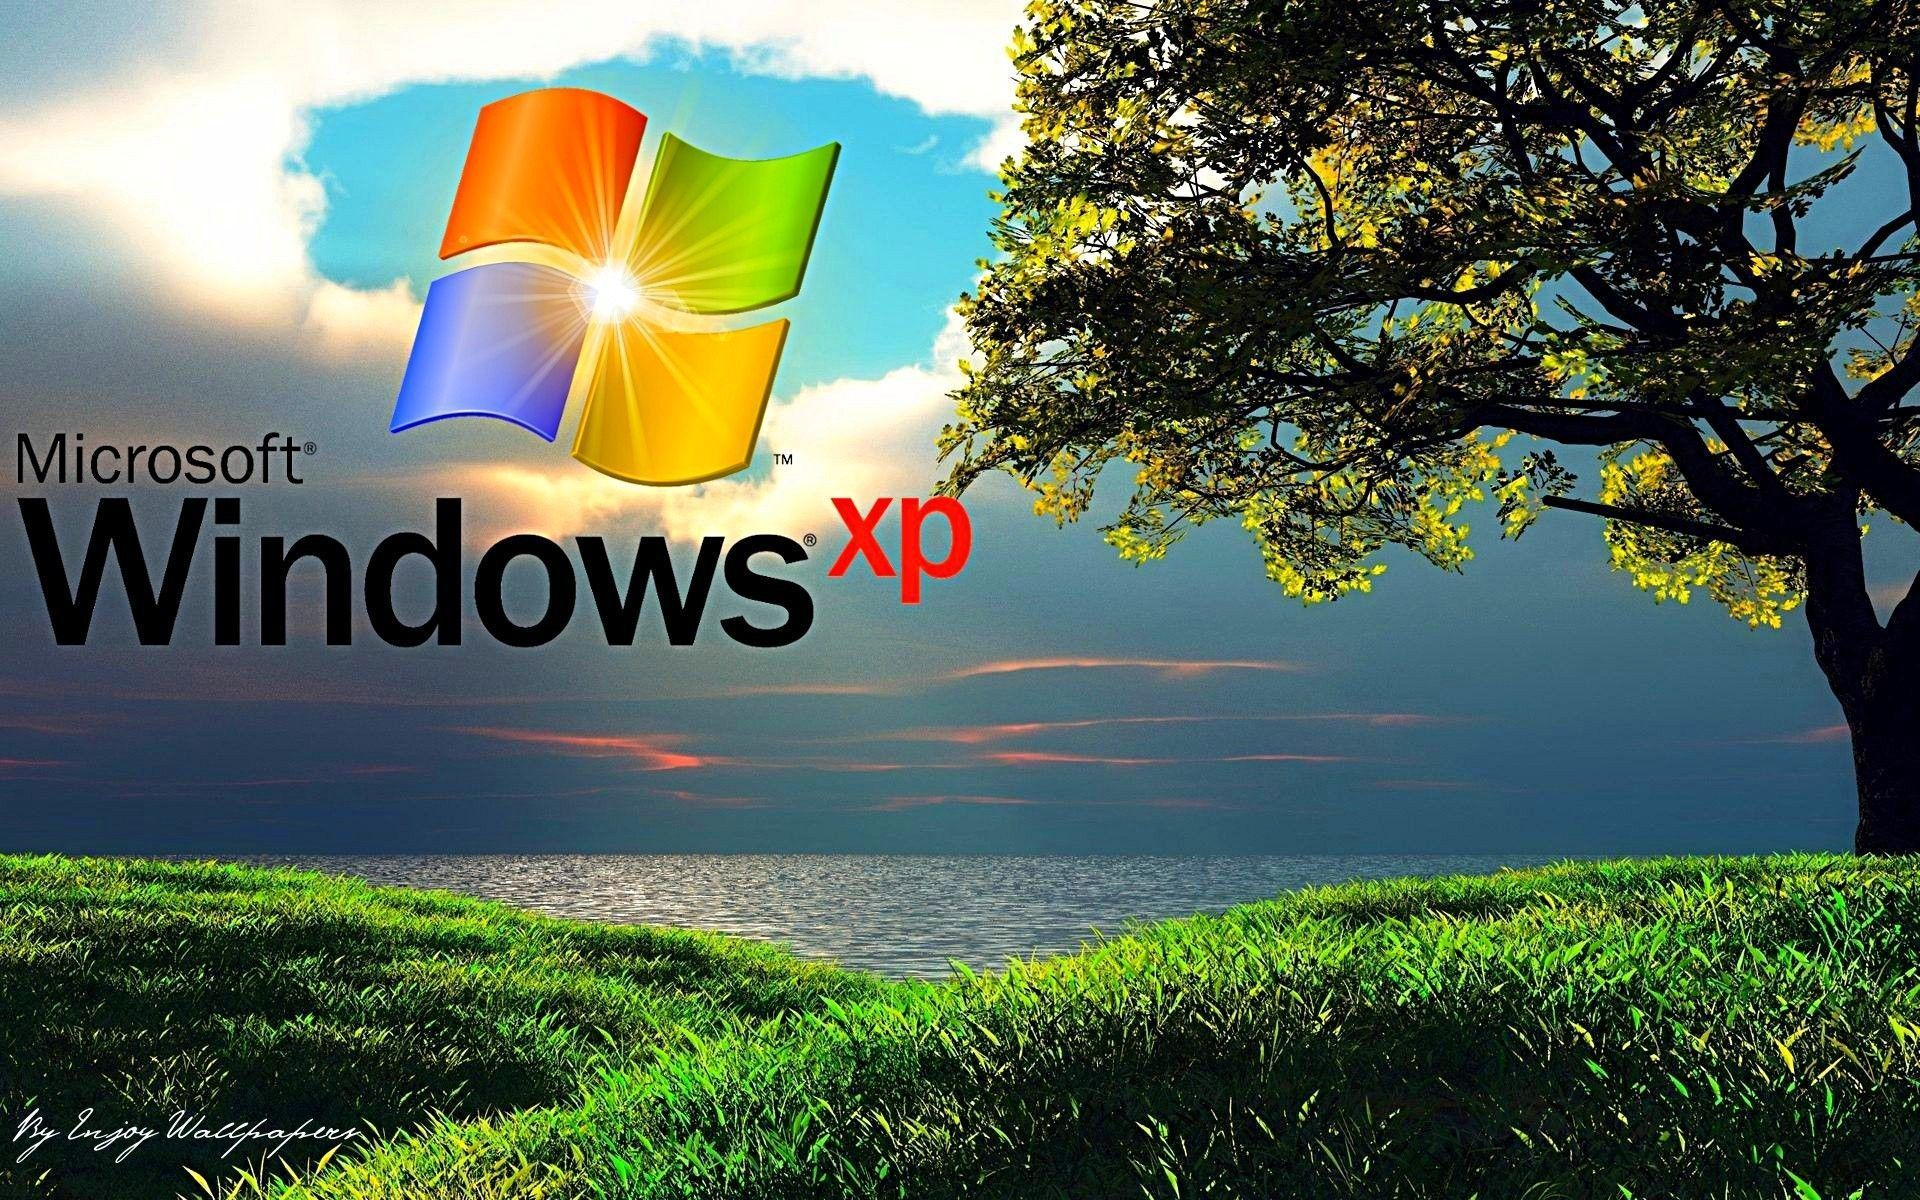 ei windows xp wallpapers pictures of windows xp hqfx | hd wallpapers